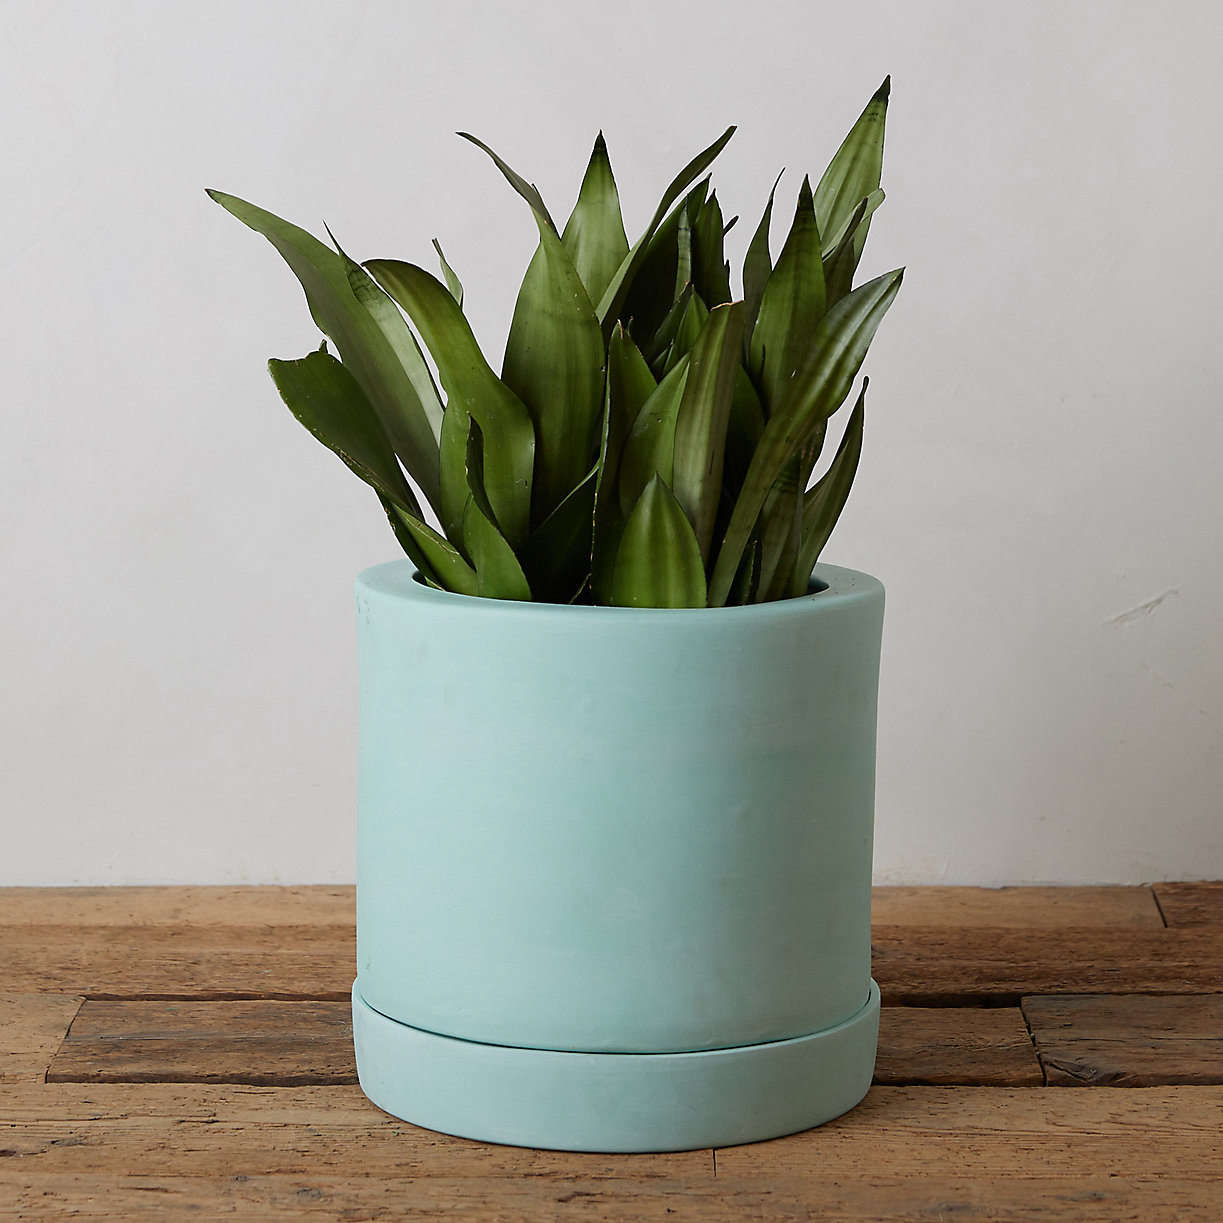 From Terrain, a -inch Pastel Terracotta Pot + Saucer is $8.